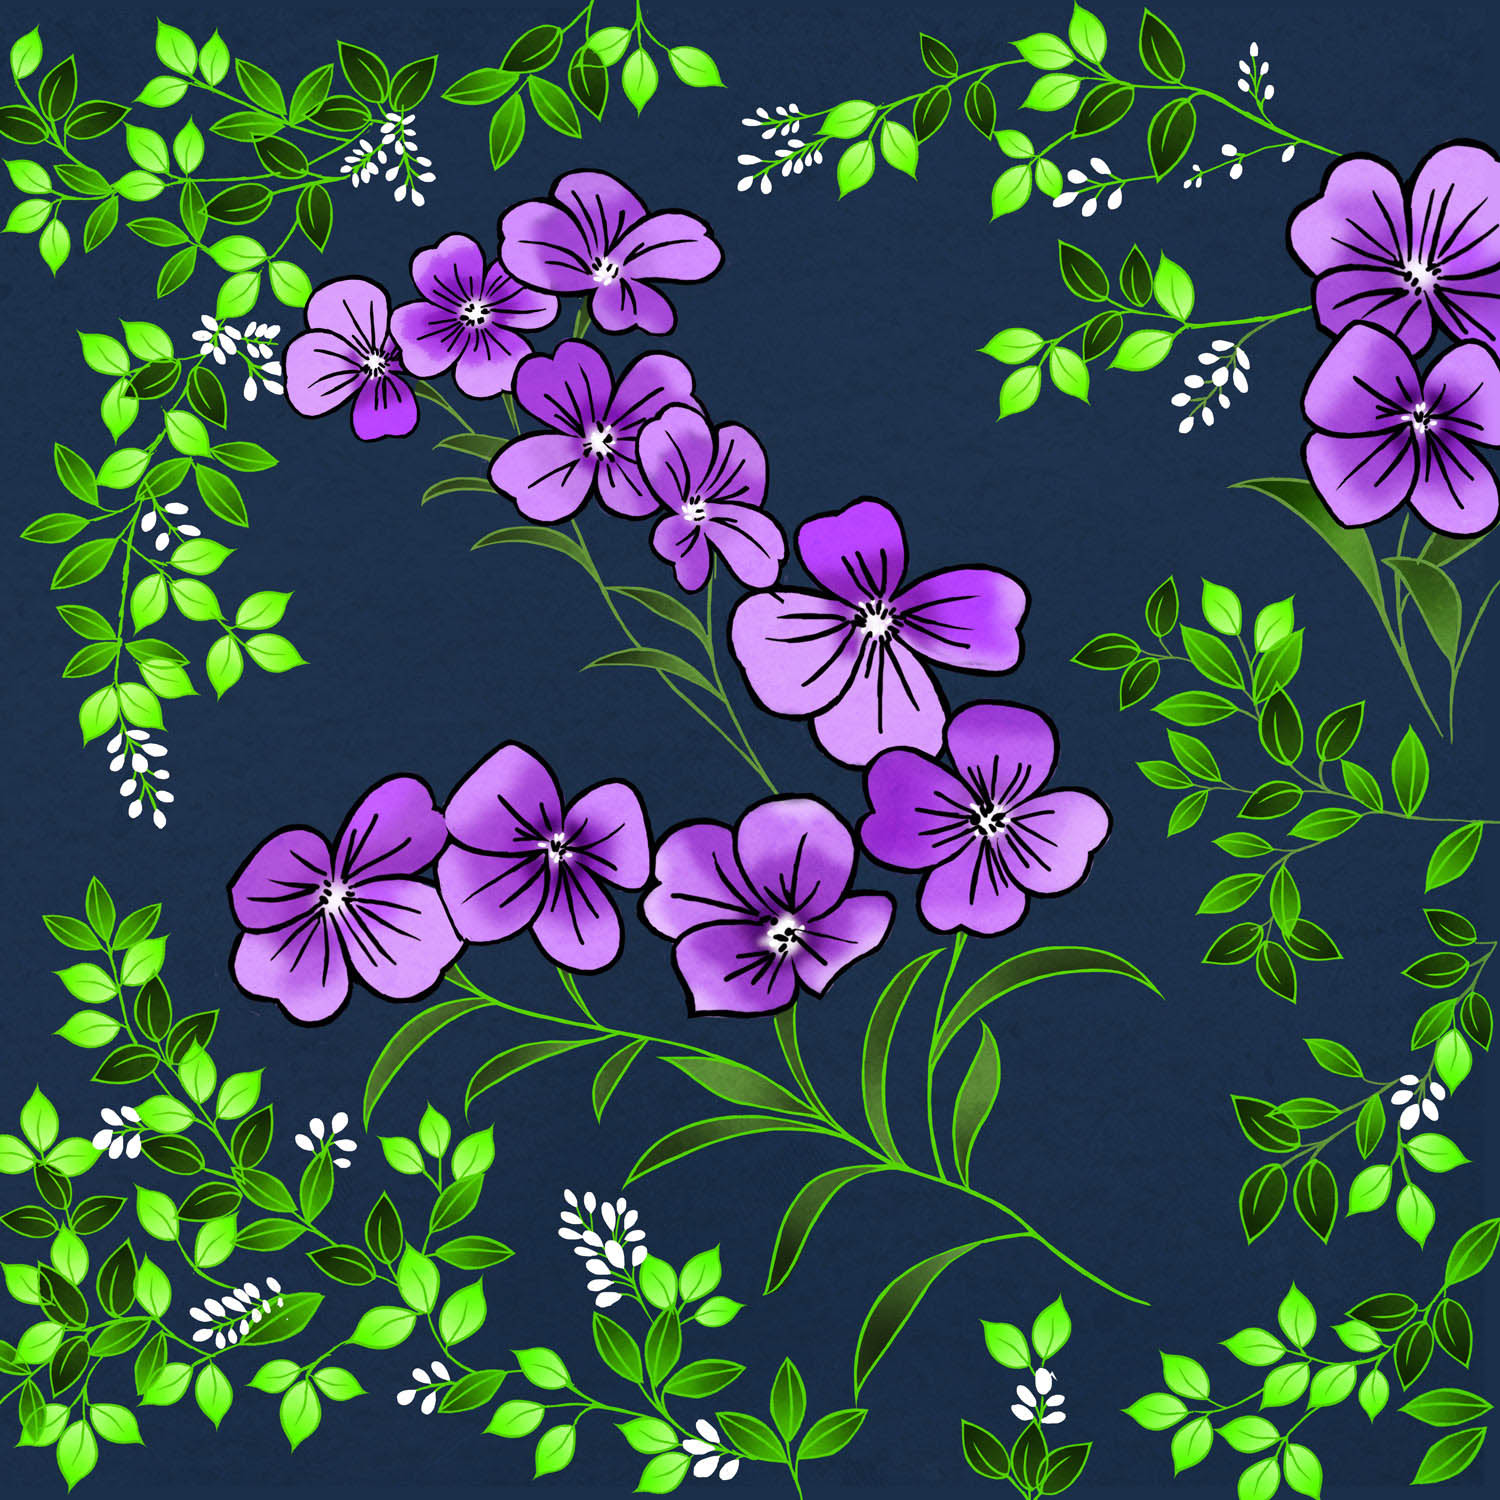 PURPLE BLOSSOM – Design Ref. 2478